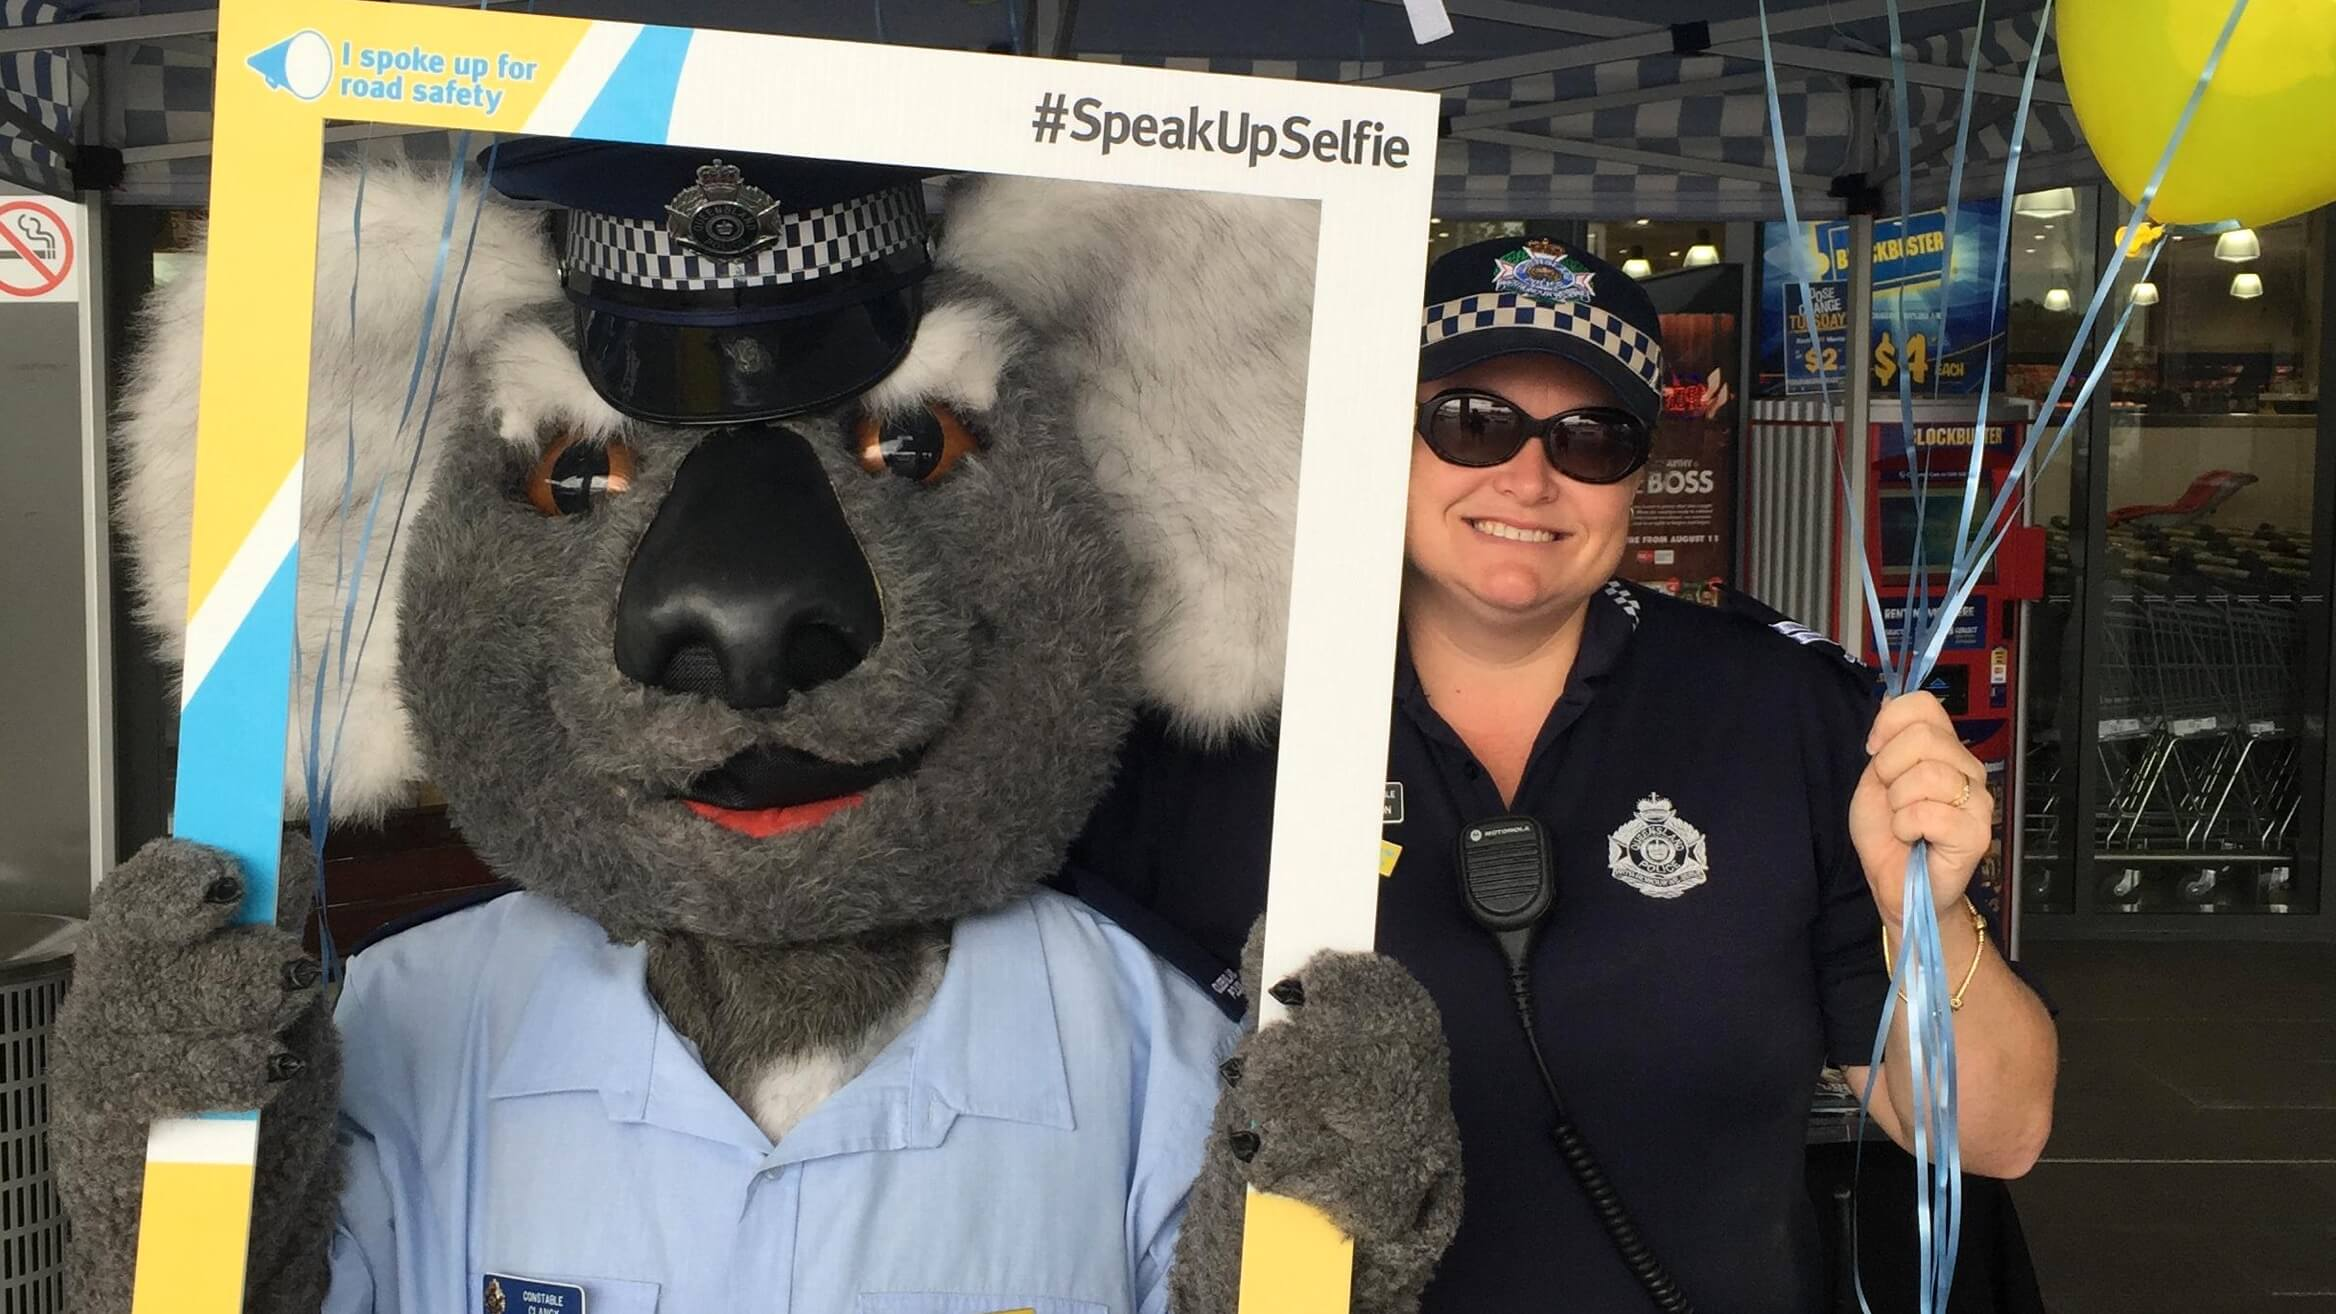 Police officer and a mascot Koala posing with a #SpeakUpSelfie frame at a Road Safety Week event